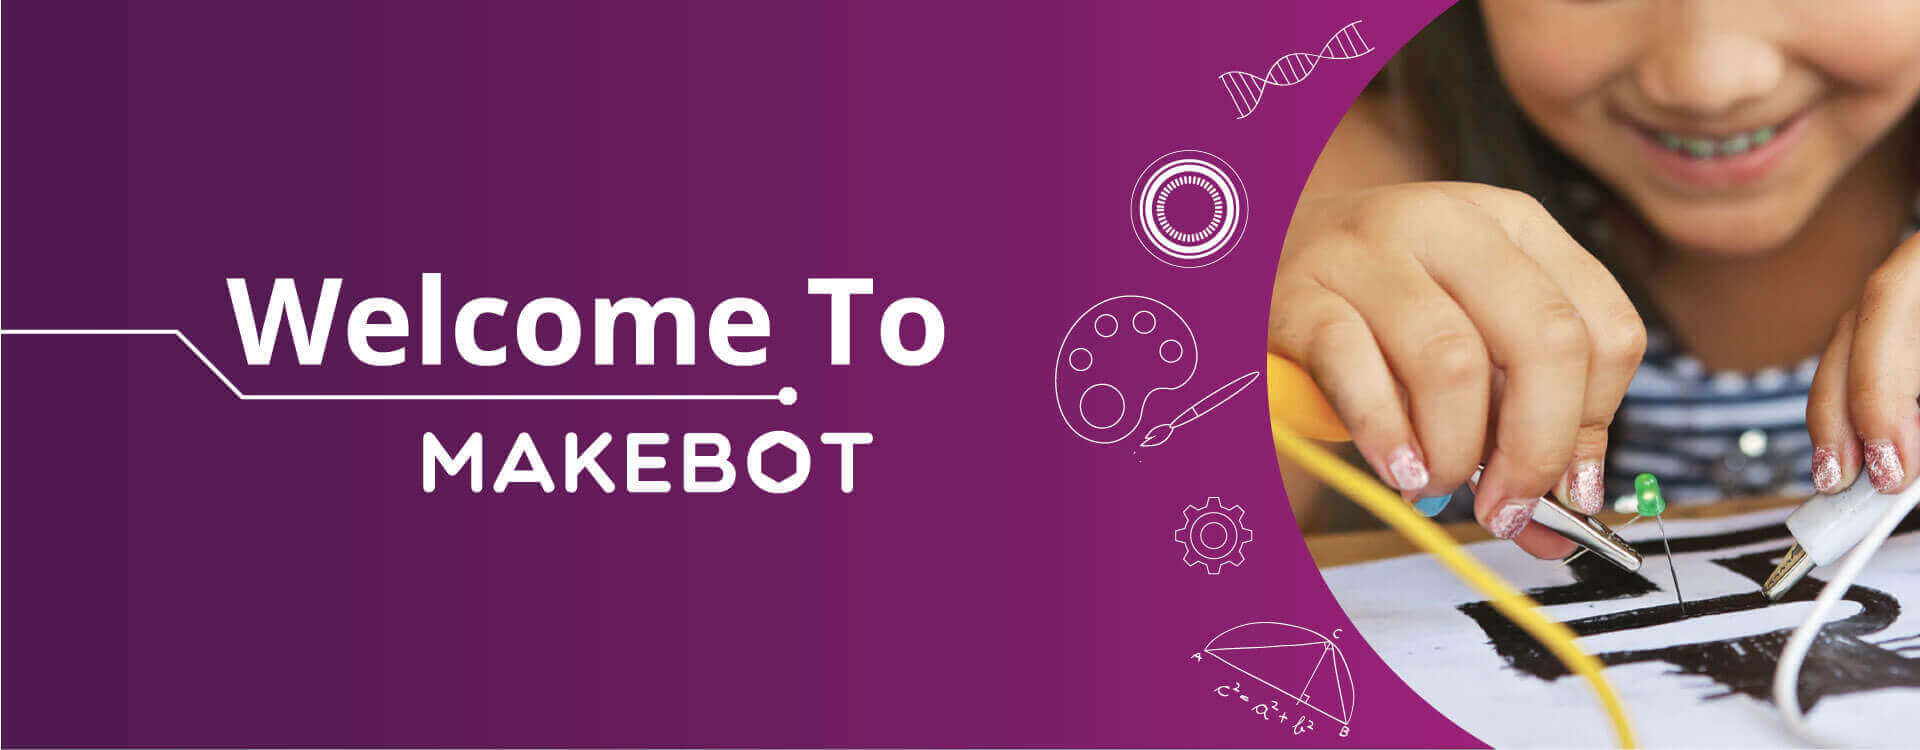 Welcome To Makebot